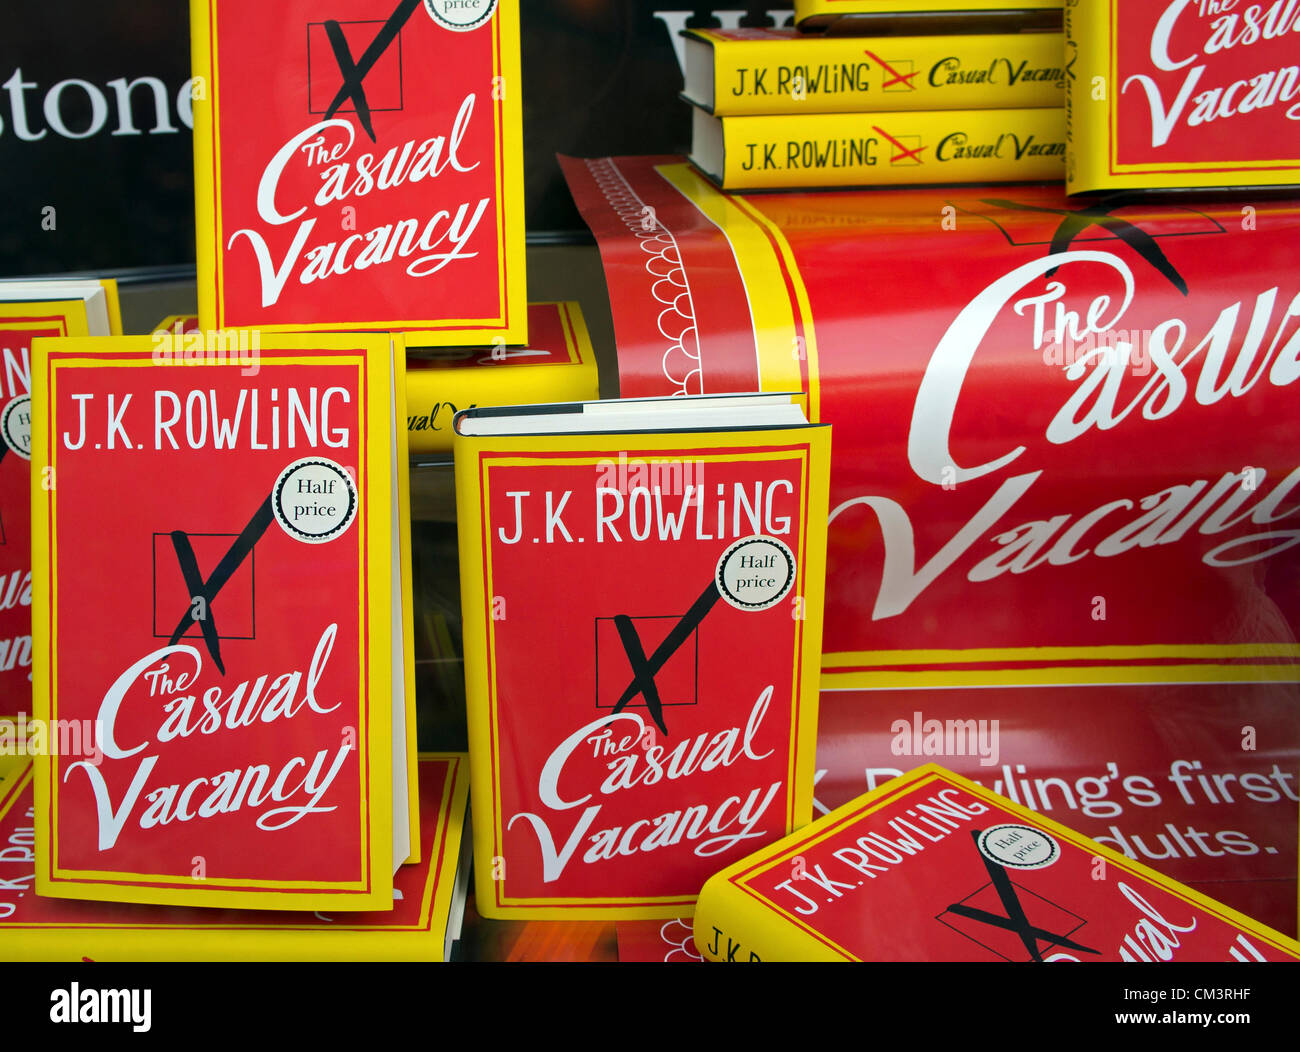 ' The Casual Vacancy ' is the new novel by the author J.K.Rowling on sale in Truro, Cornwall, 28th September - Stock Image